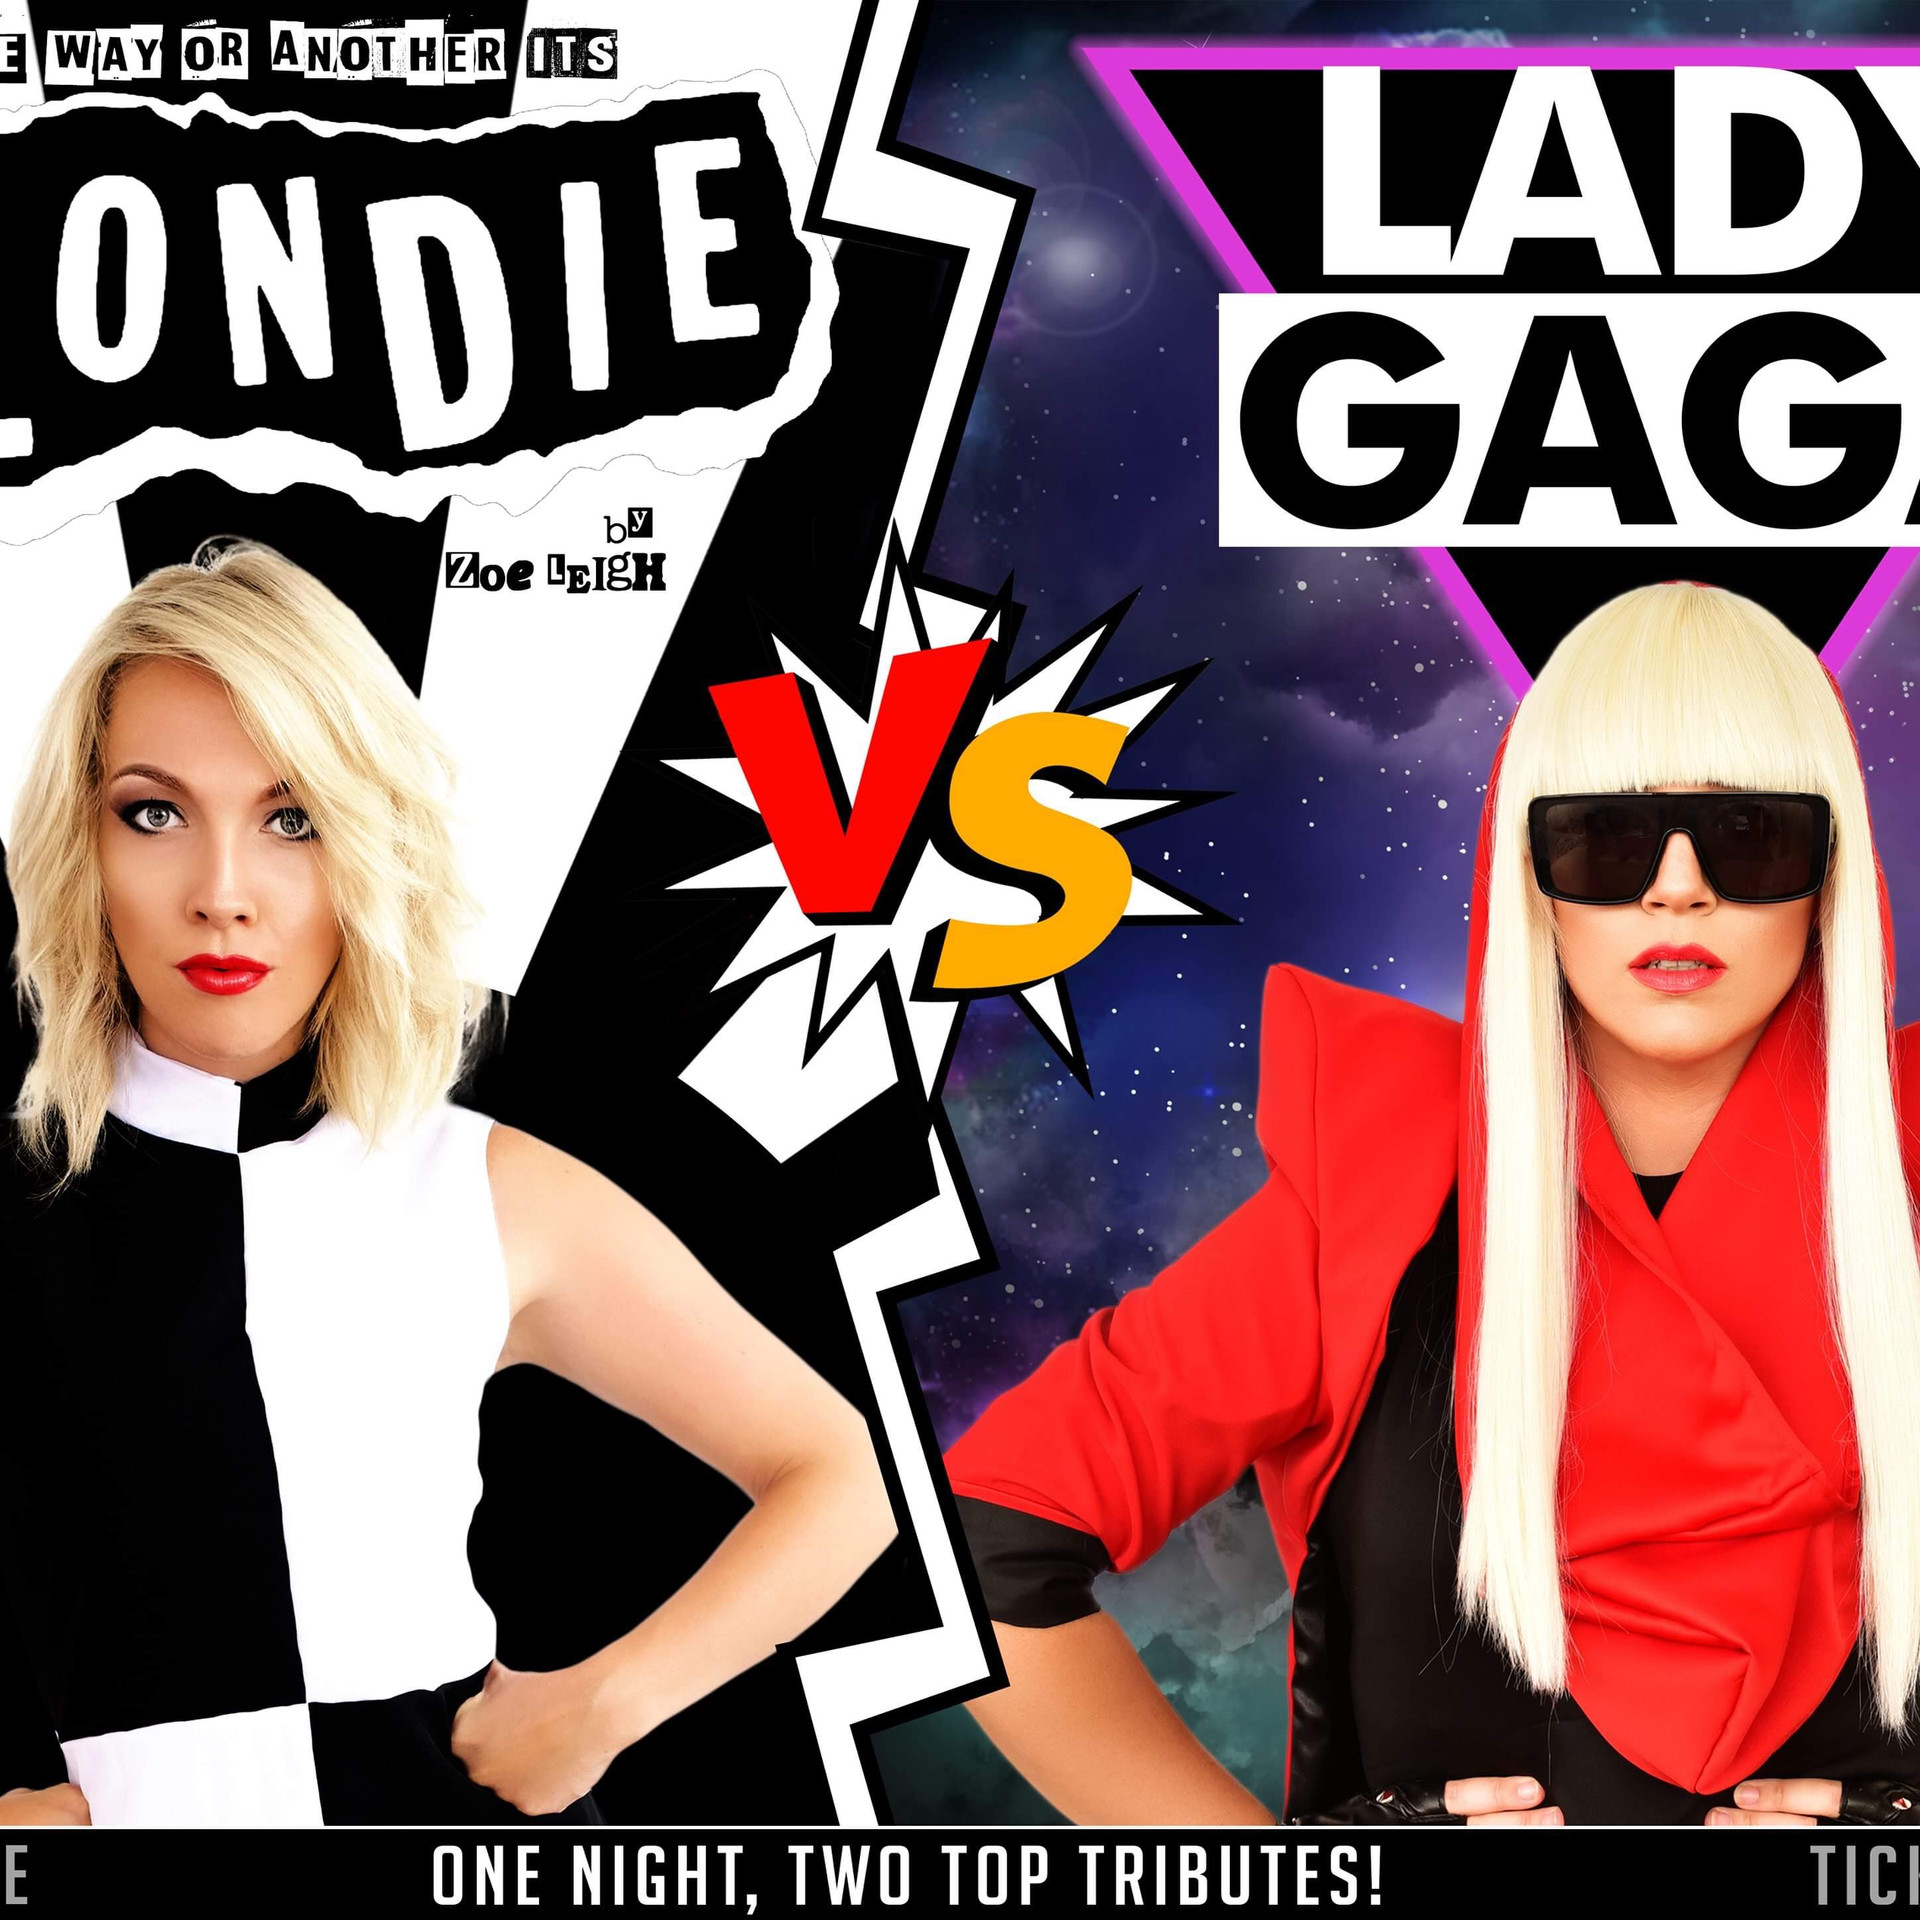 Blondie vs Gaga